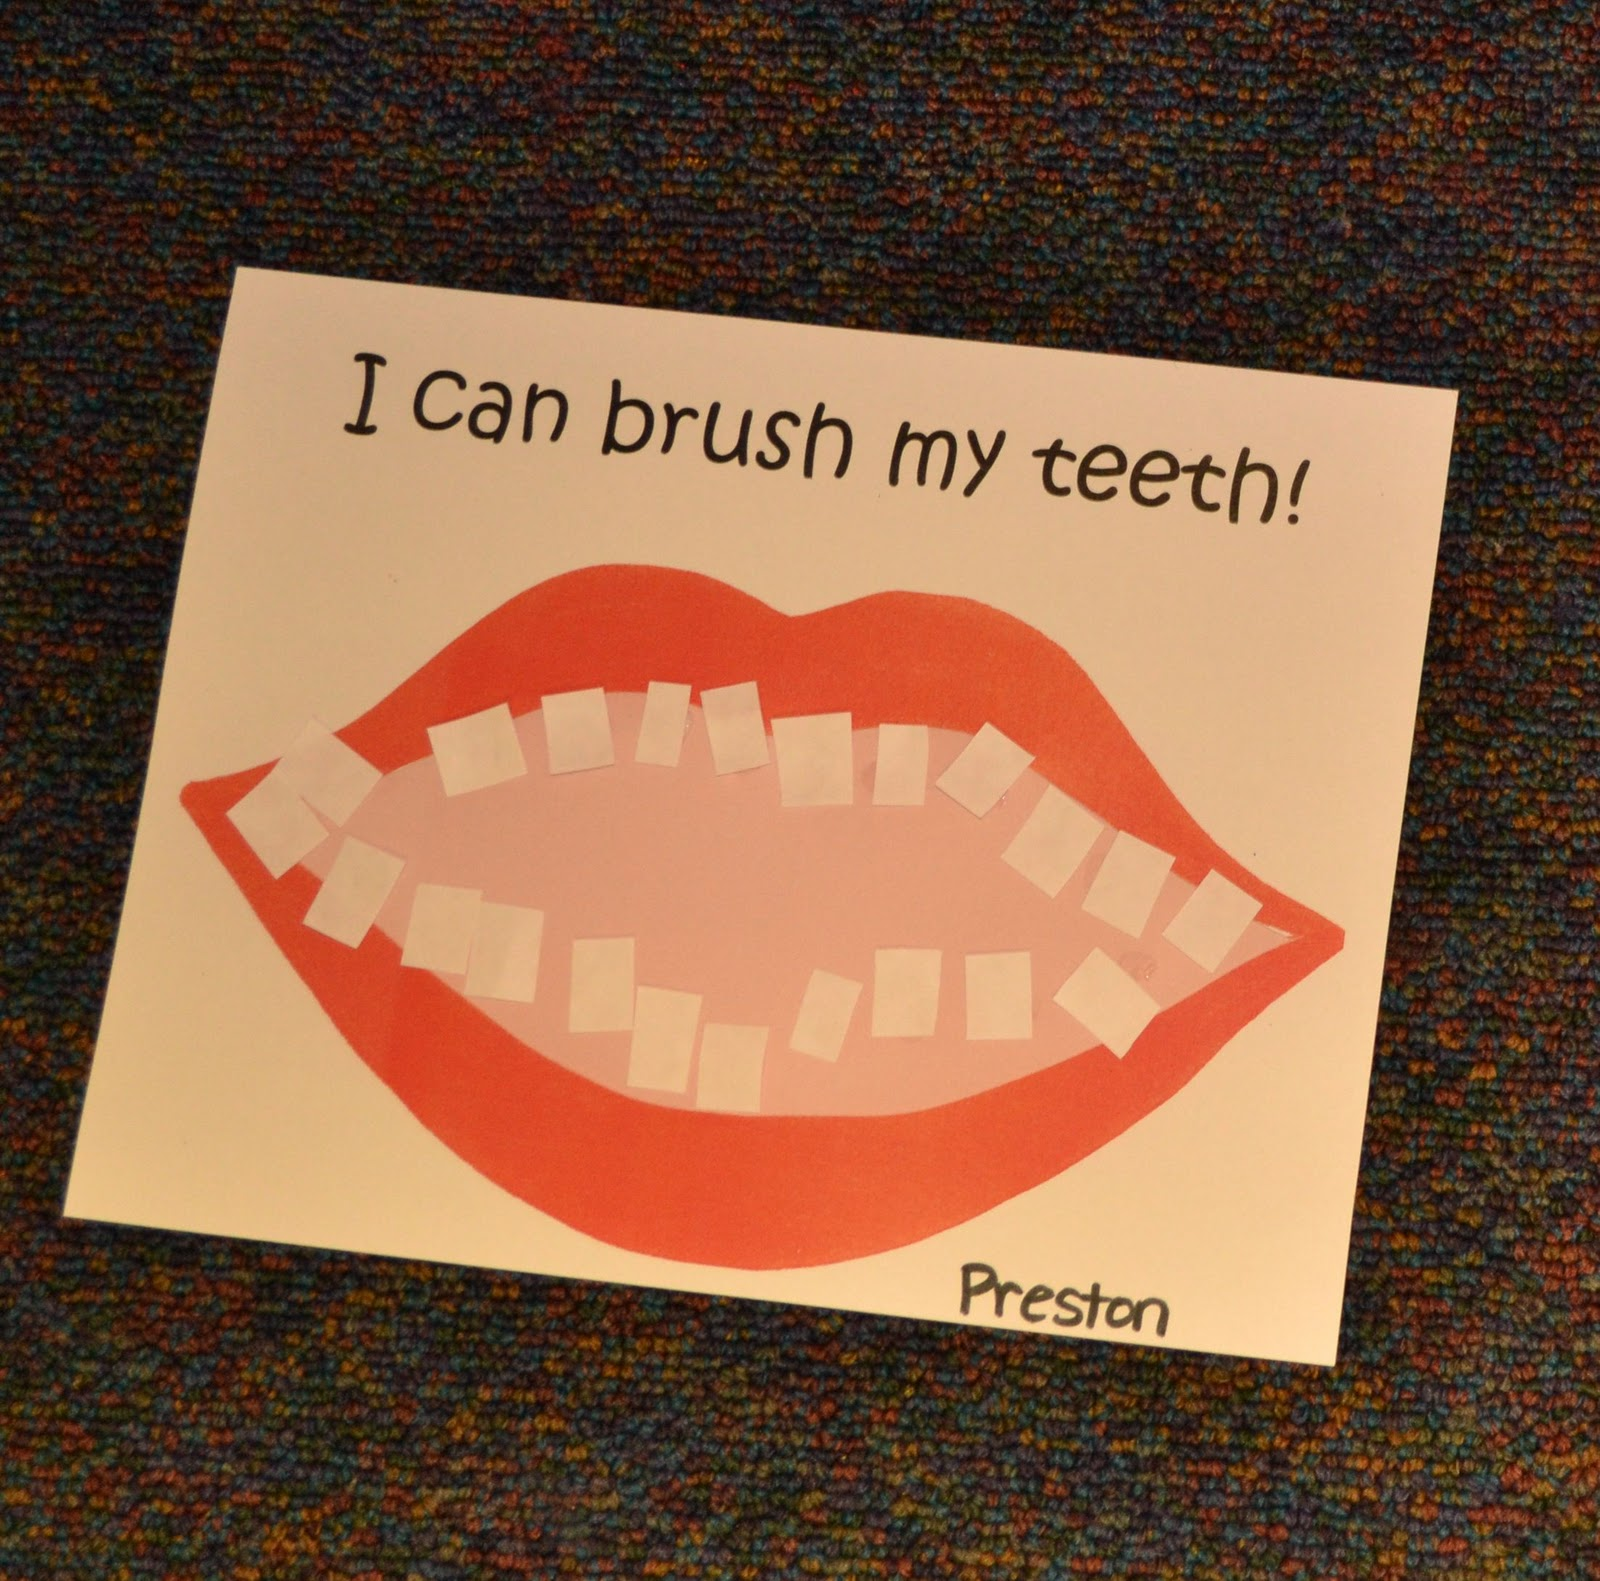 From The Hive Dental Health